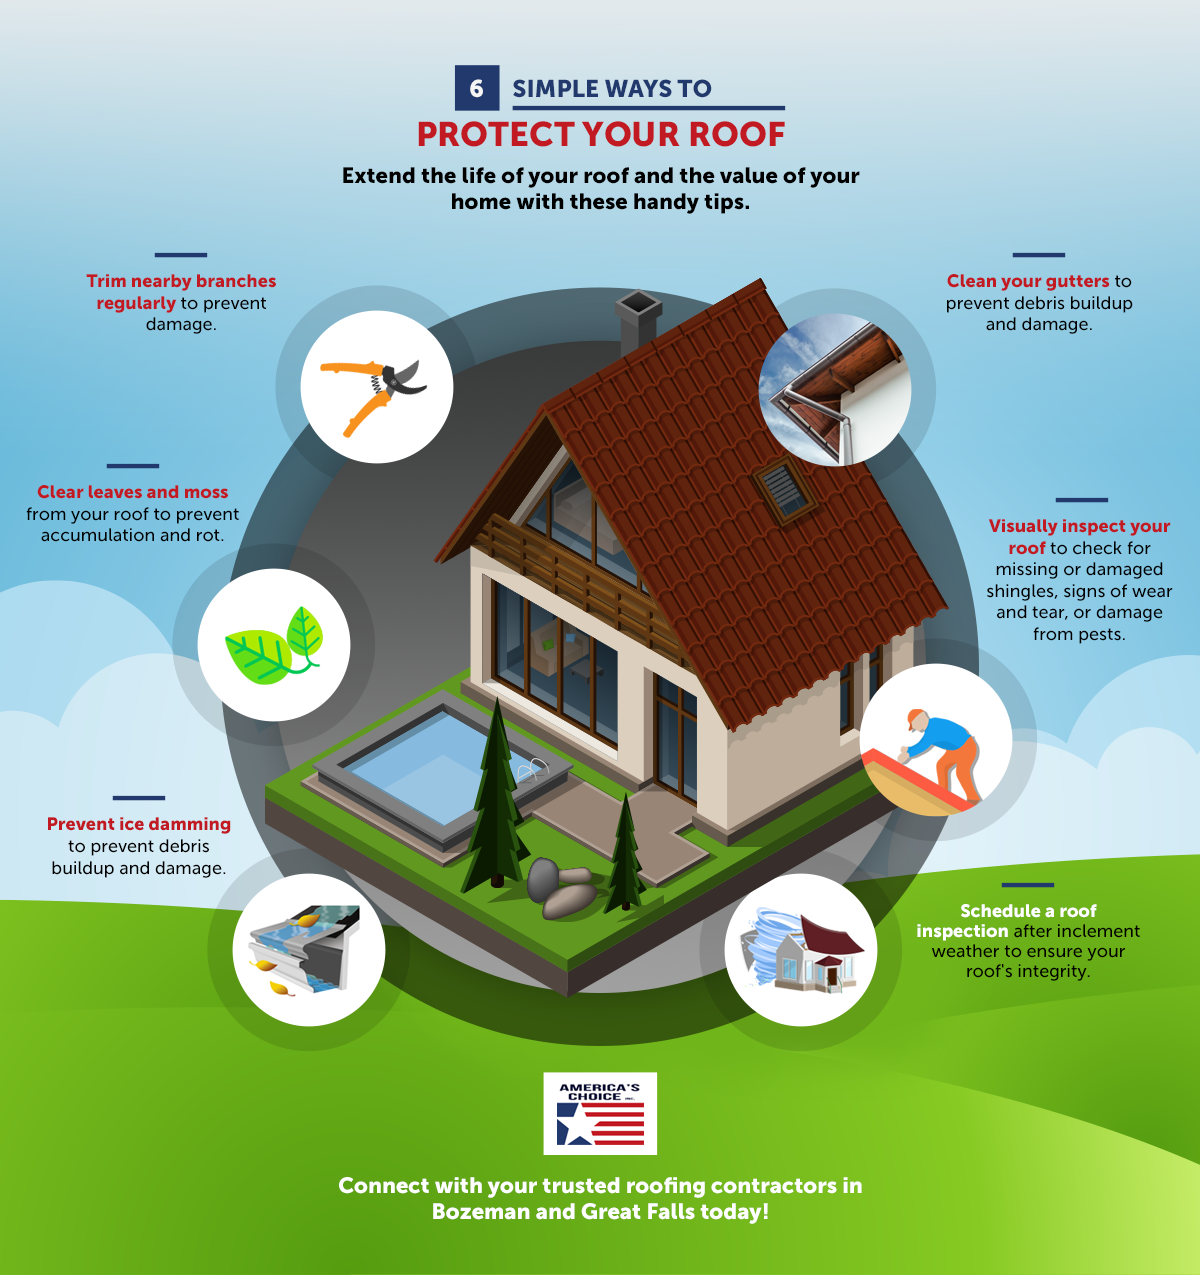 6 Simple Ways to Protect Your Roof.png